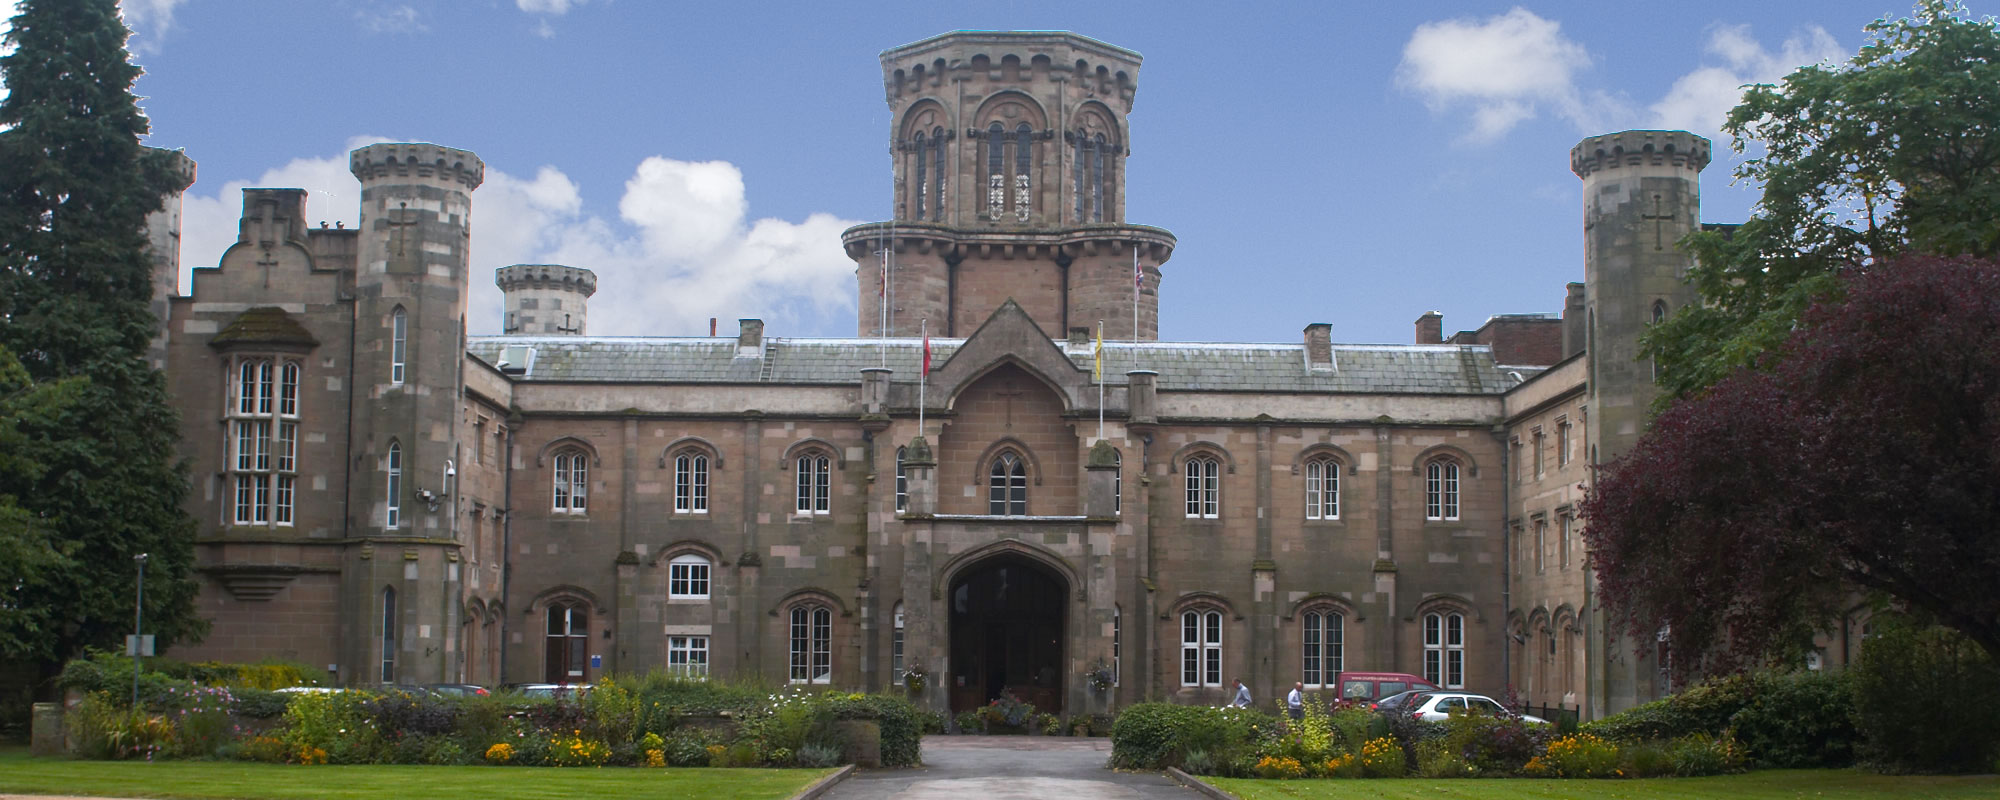 Exterior view of Studley Castle